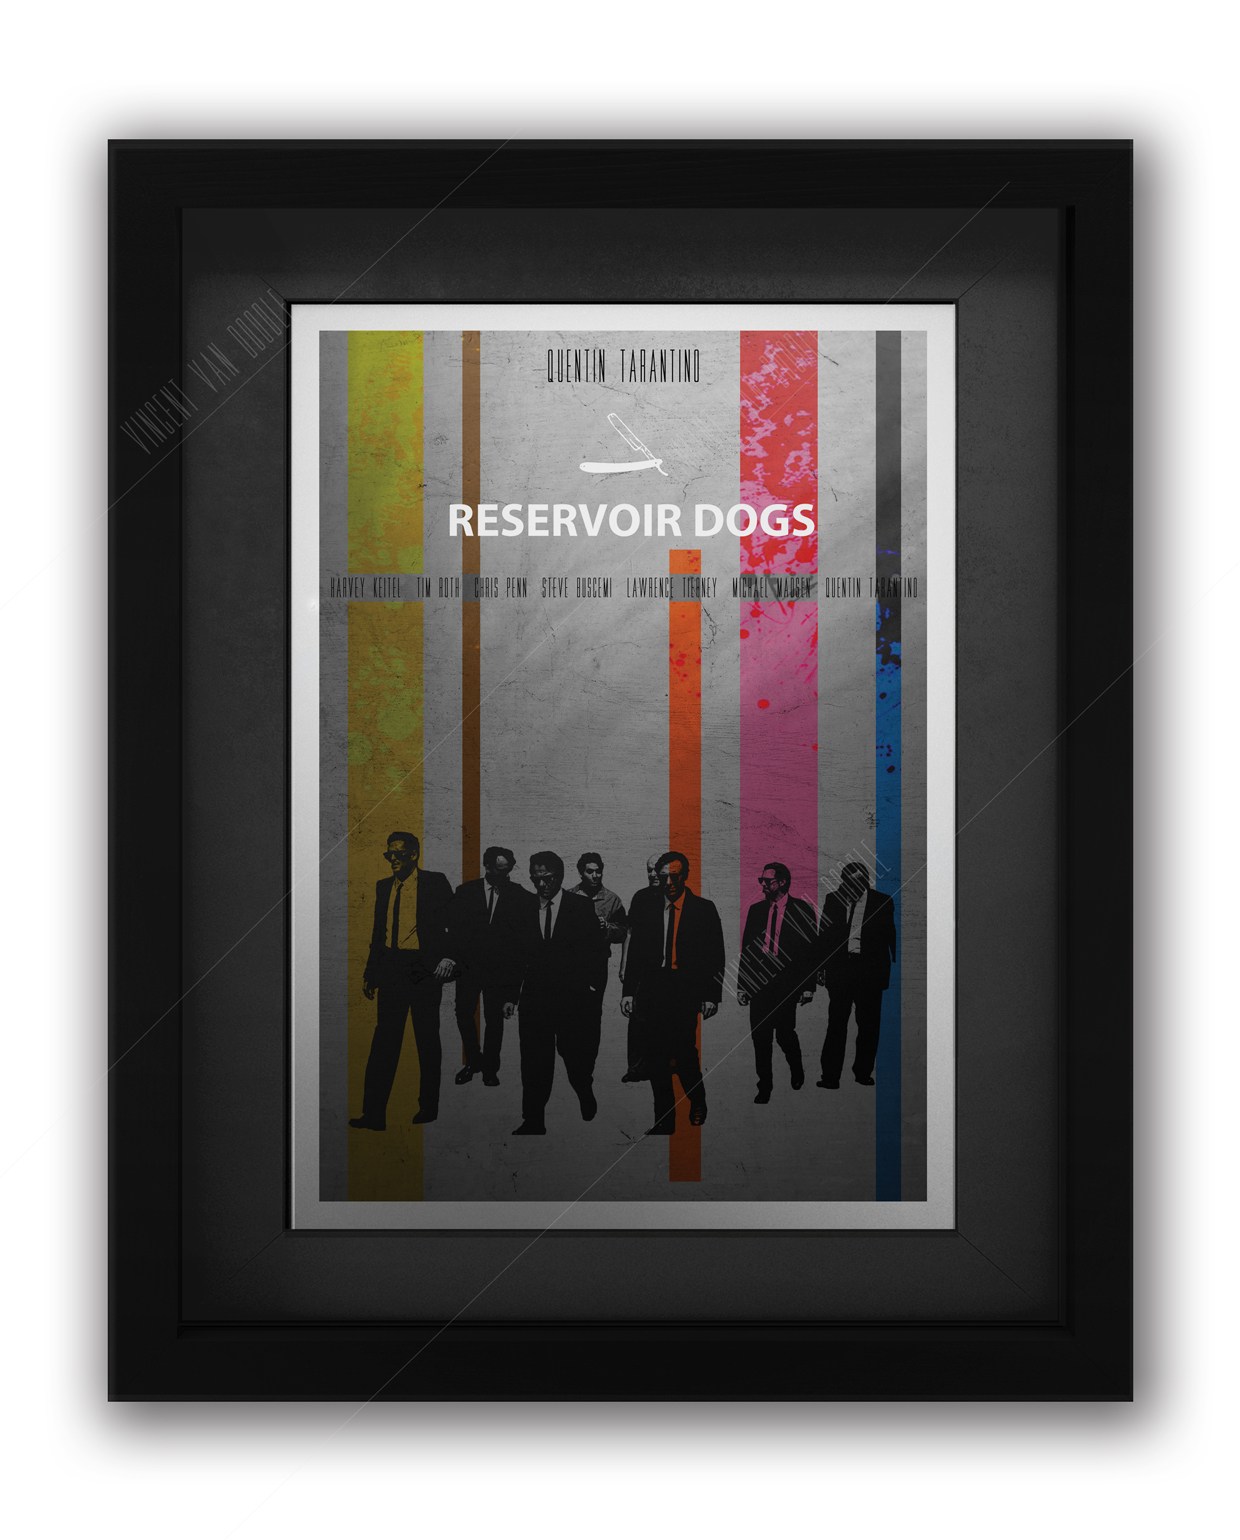 Reservoir dogs movie poster framed